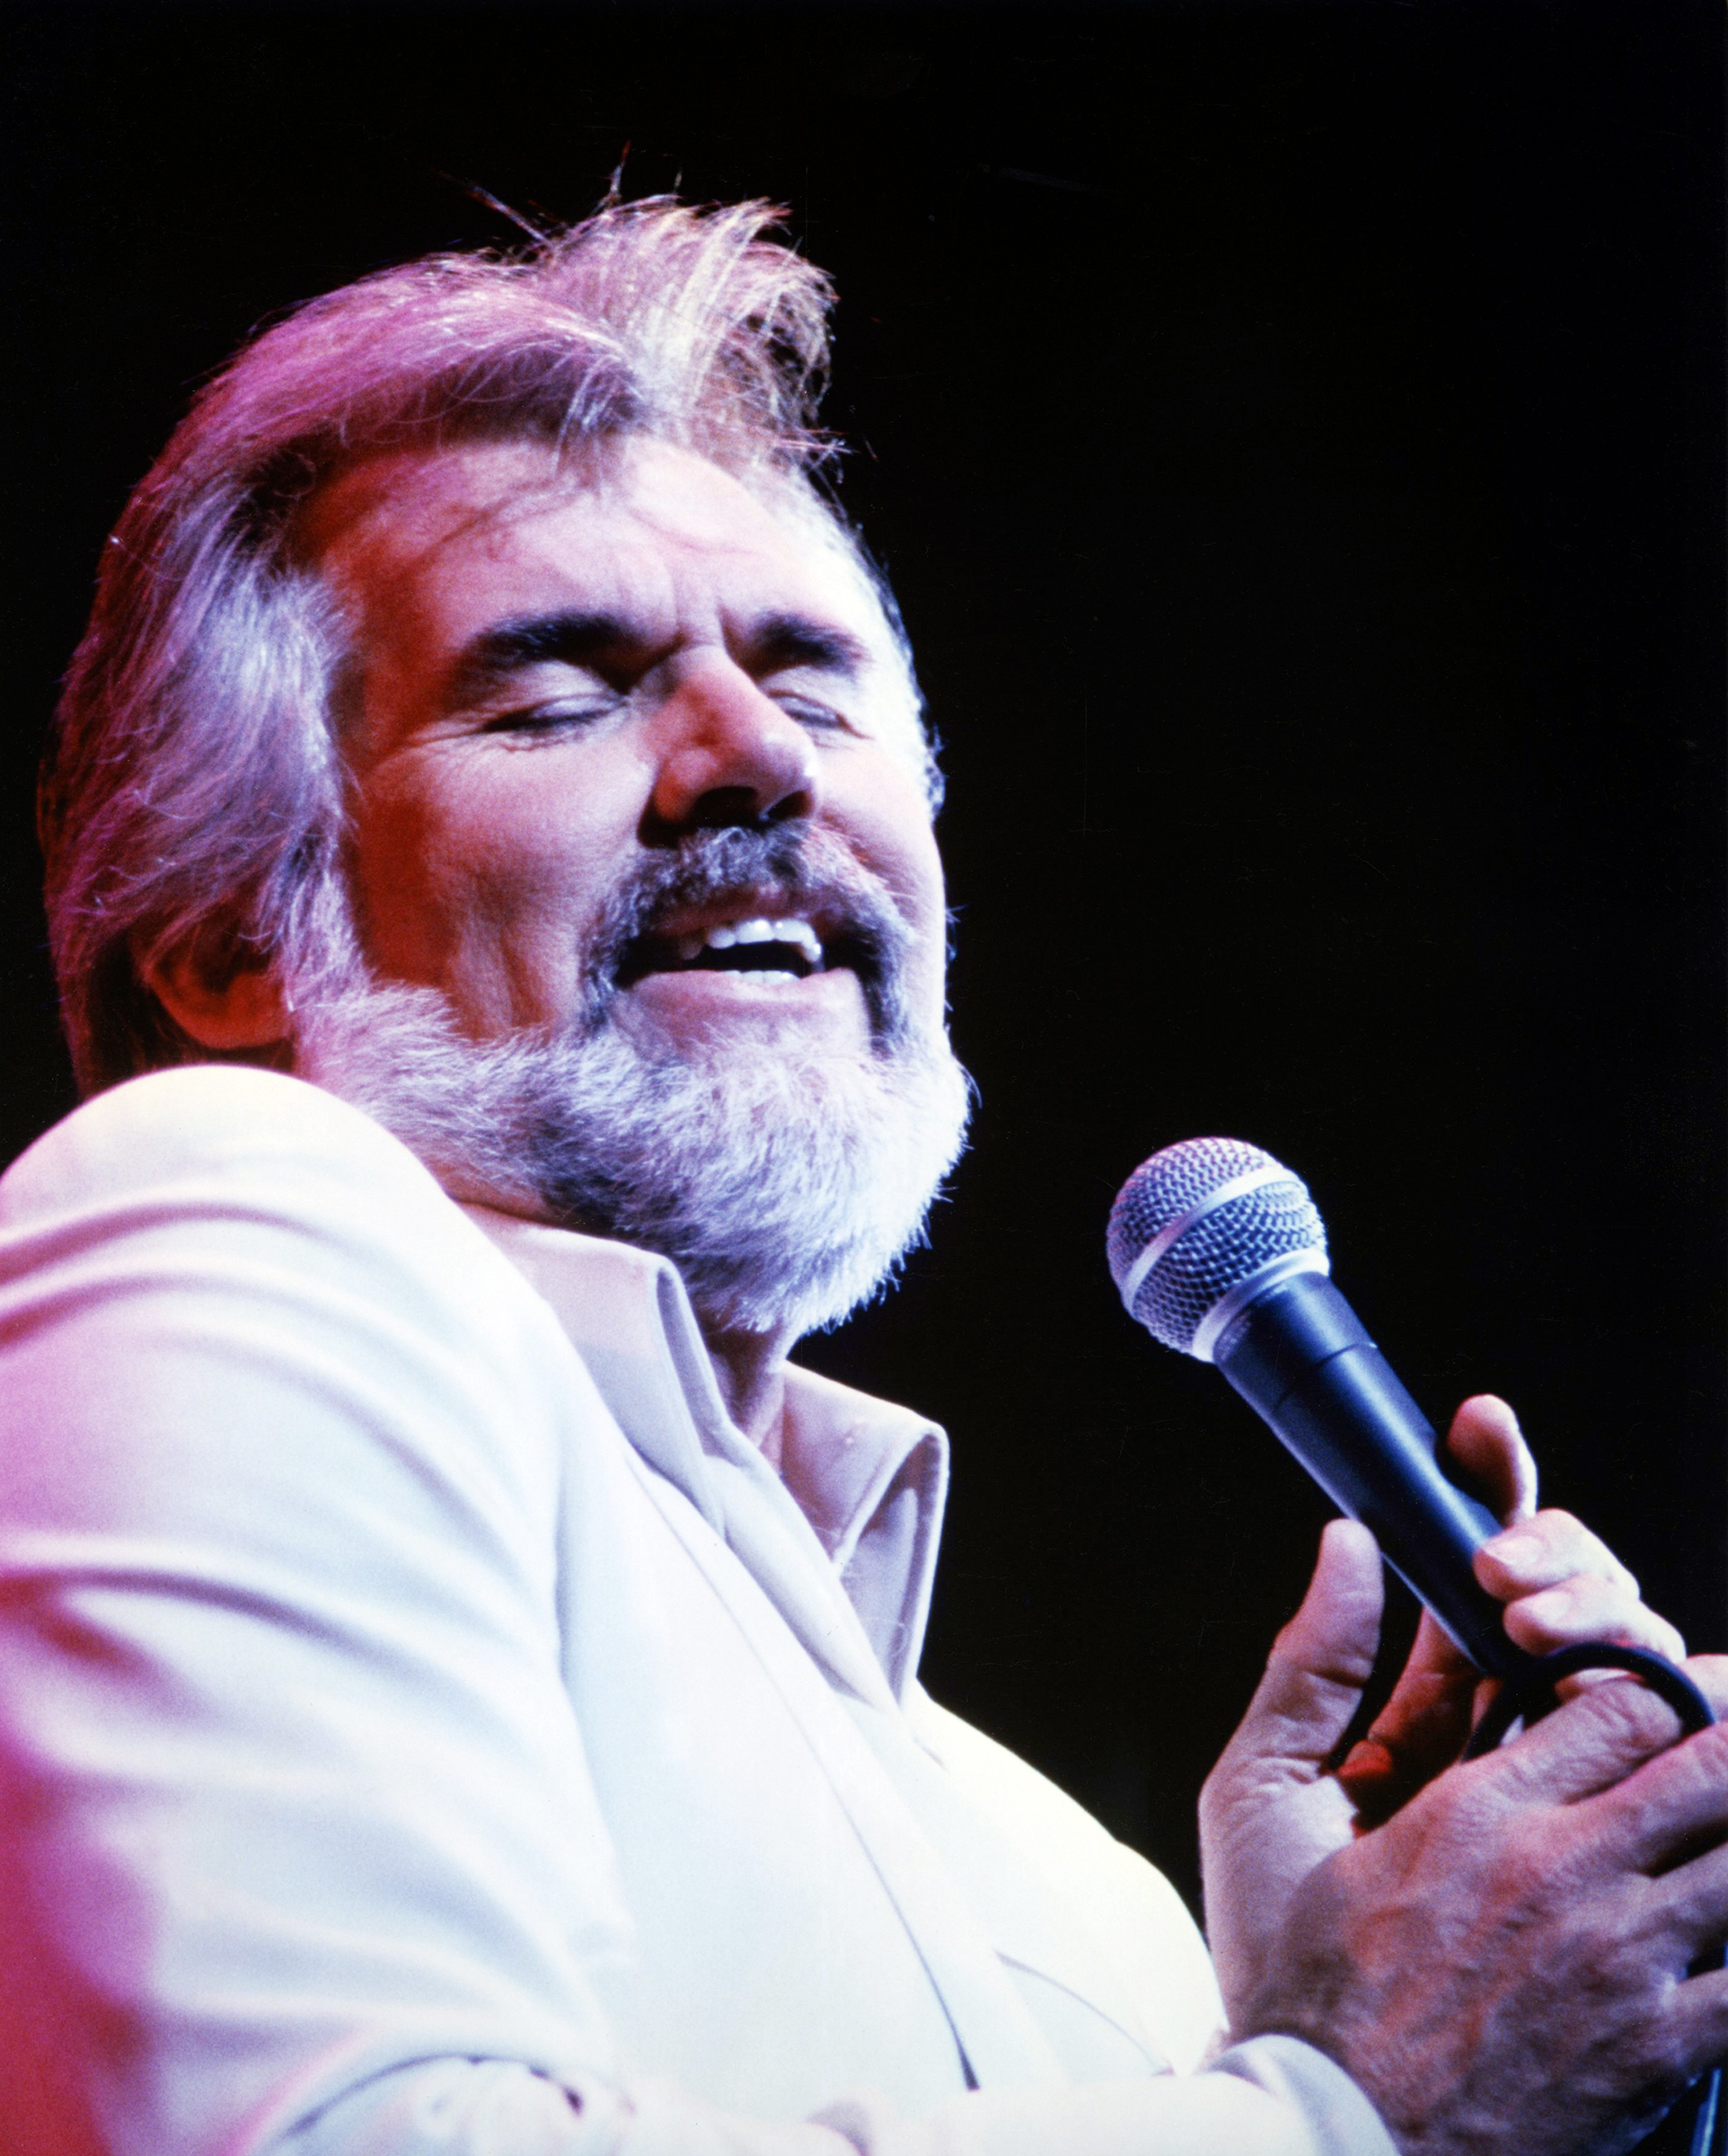 Rogers, who was inducted into the Country Music Hall of Fame in 2013, singing circa1980